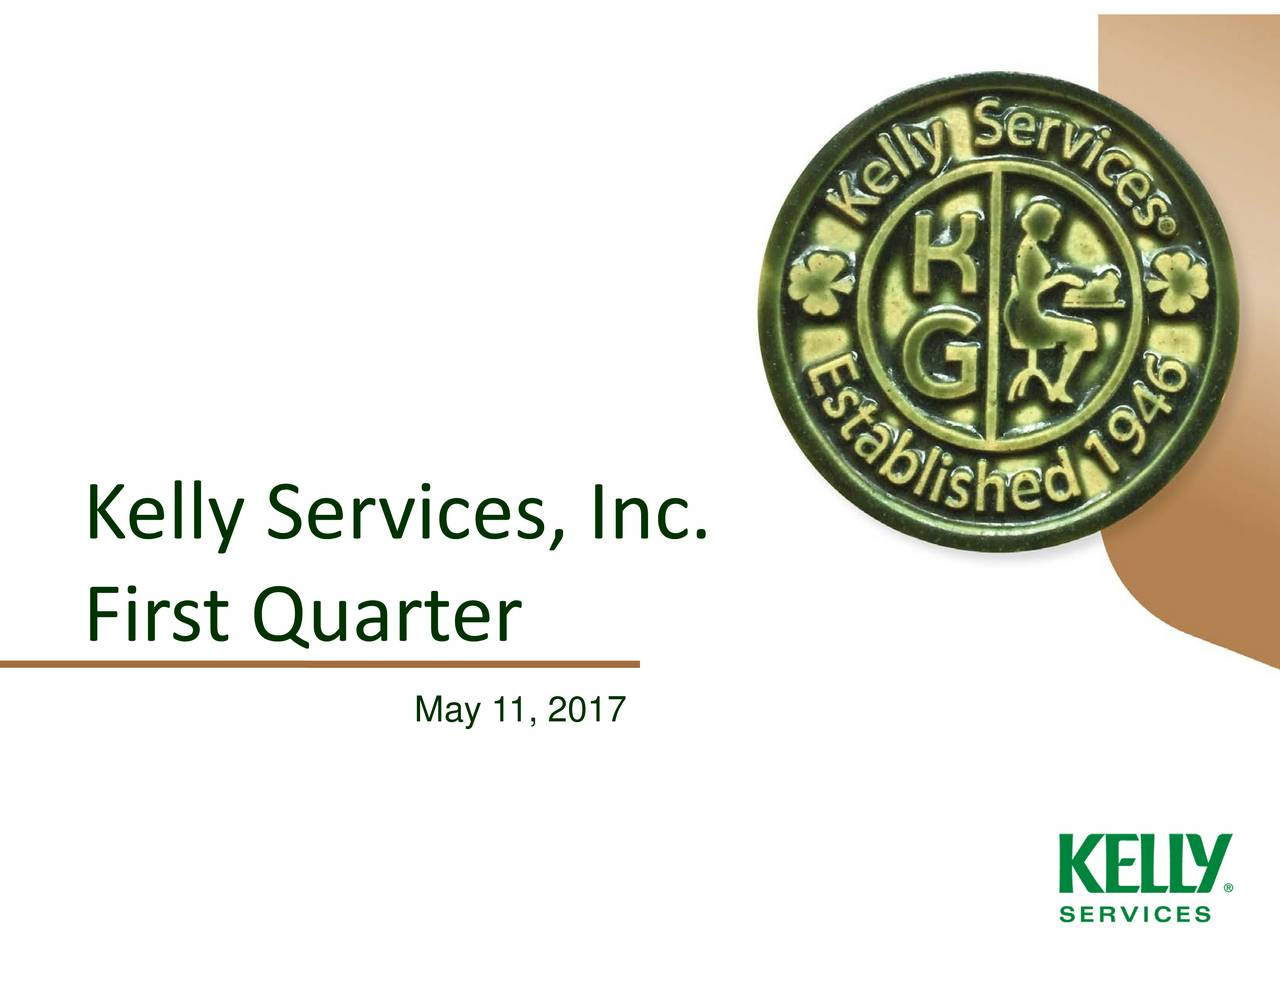 kelly services inc 2017 q1 results earnings call slides kelly services inc nasdaq. Black Bedroom Furniture Sets. Home Design Ideas